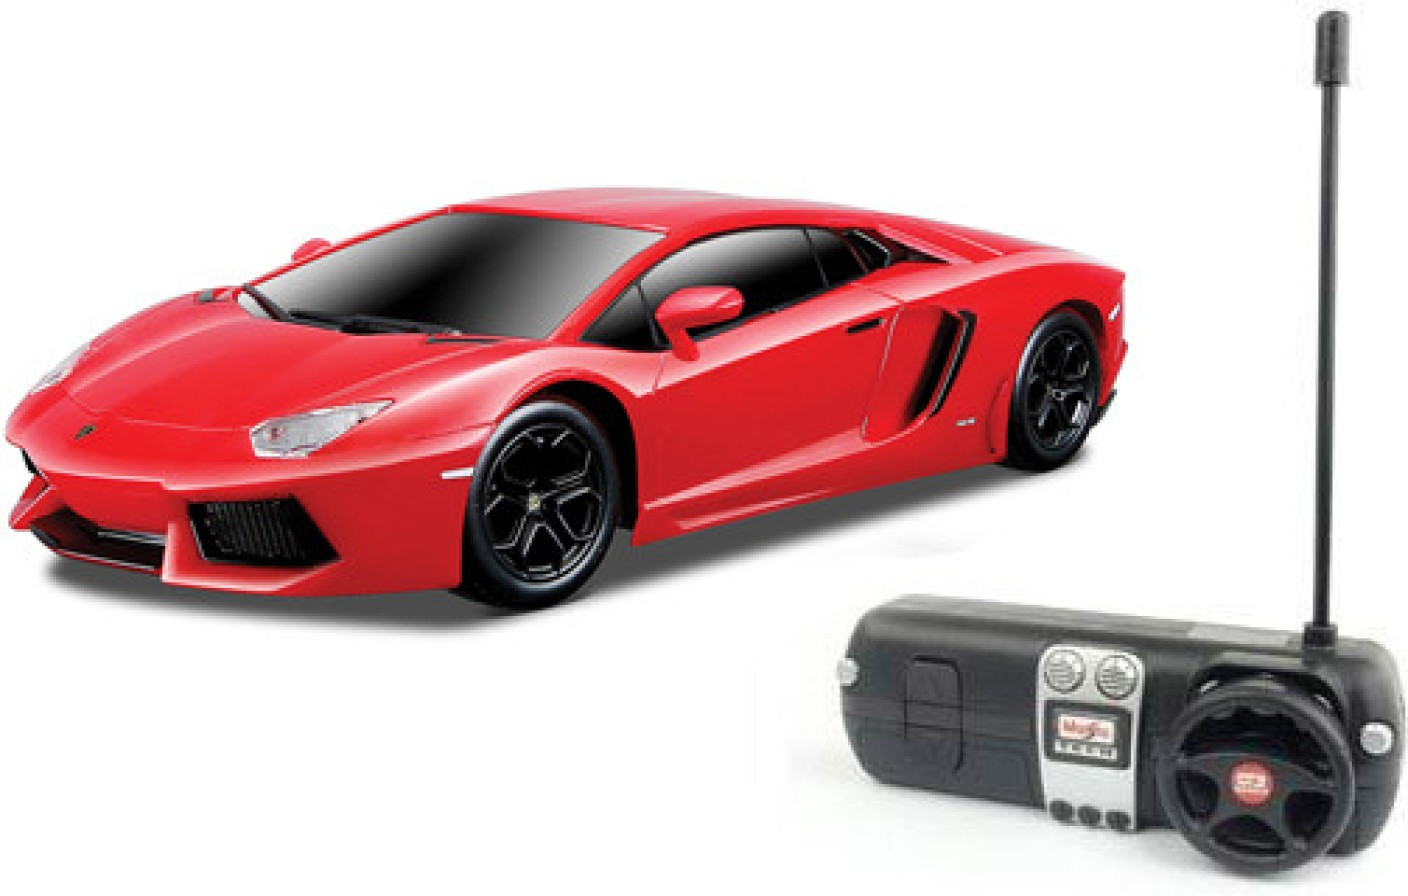 Maisto Remote Control Cars Review